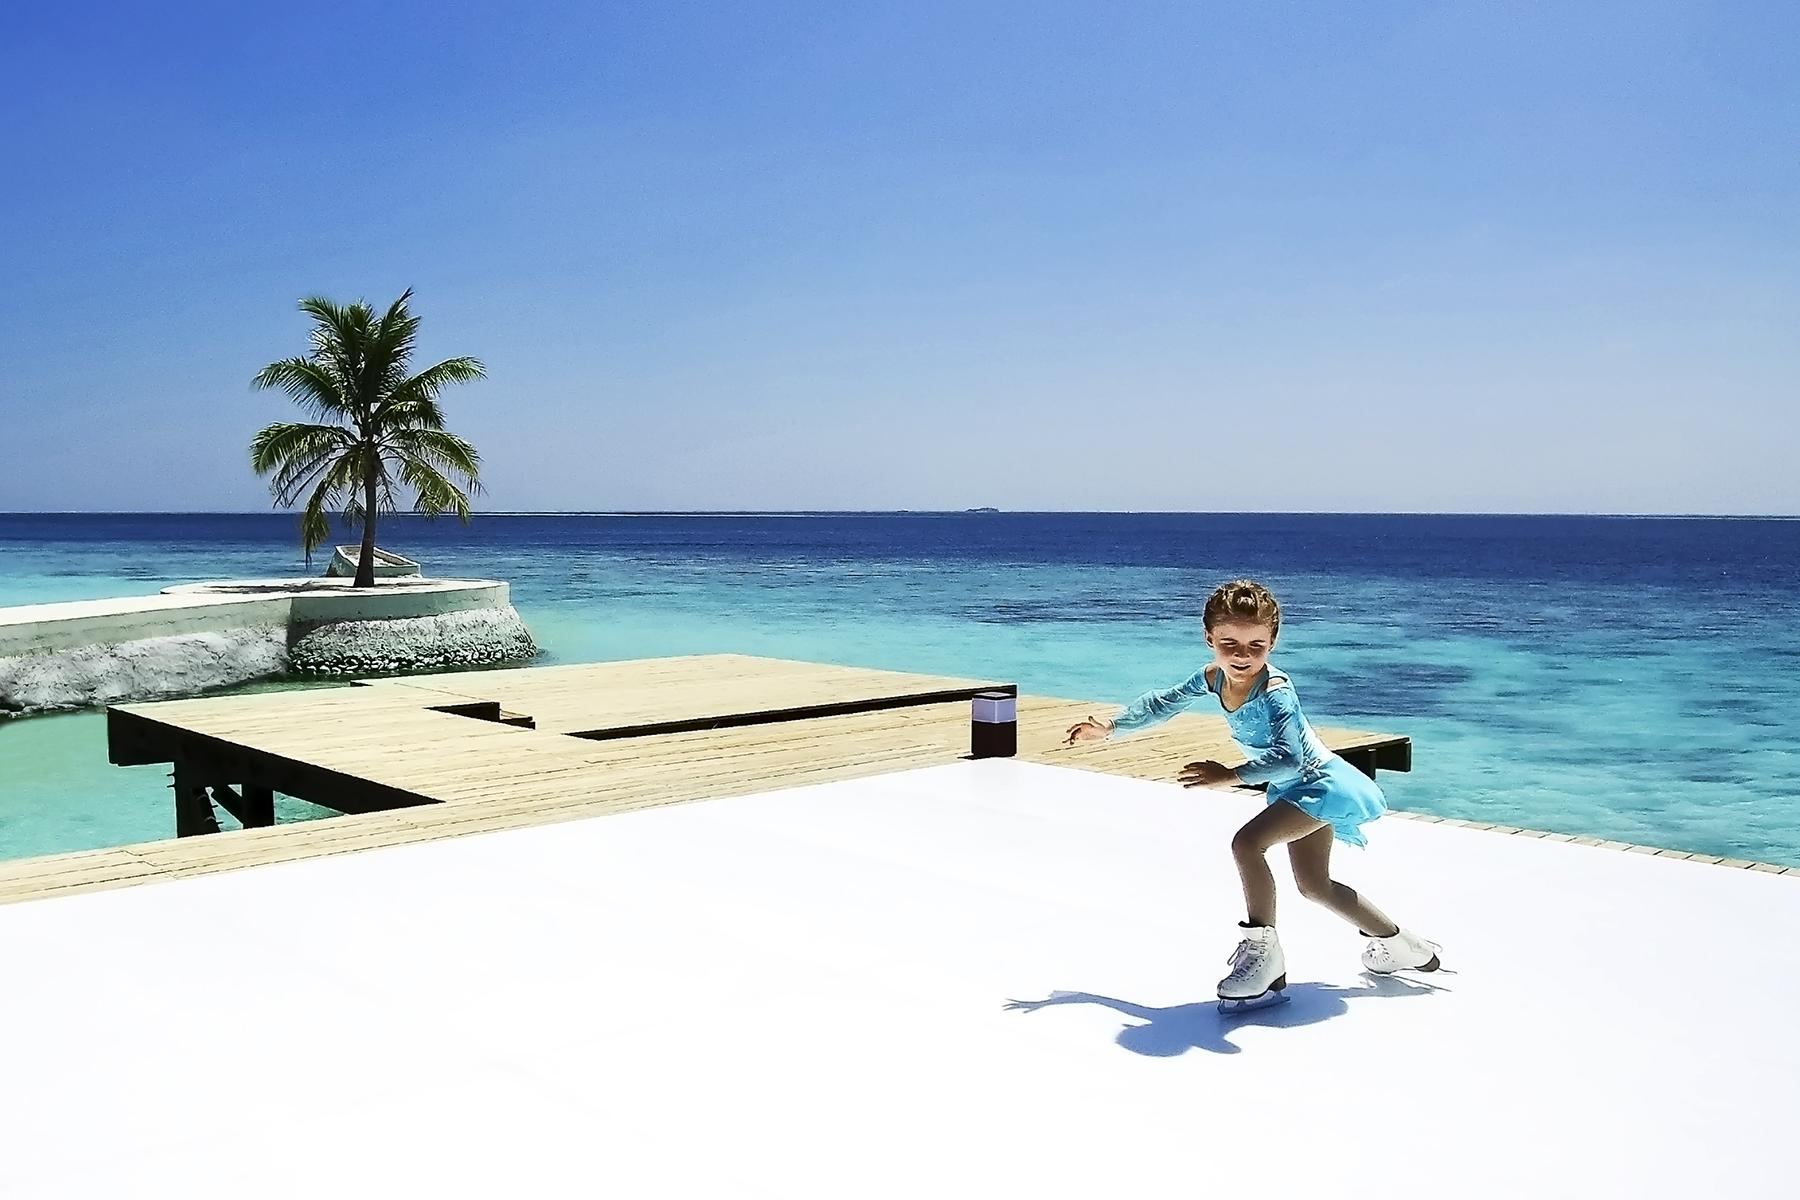 6.Unique-Hotel-Experiences-Ice-Skate-On-Island-1